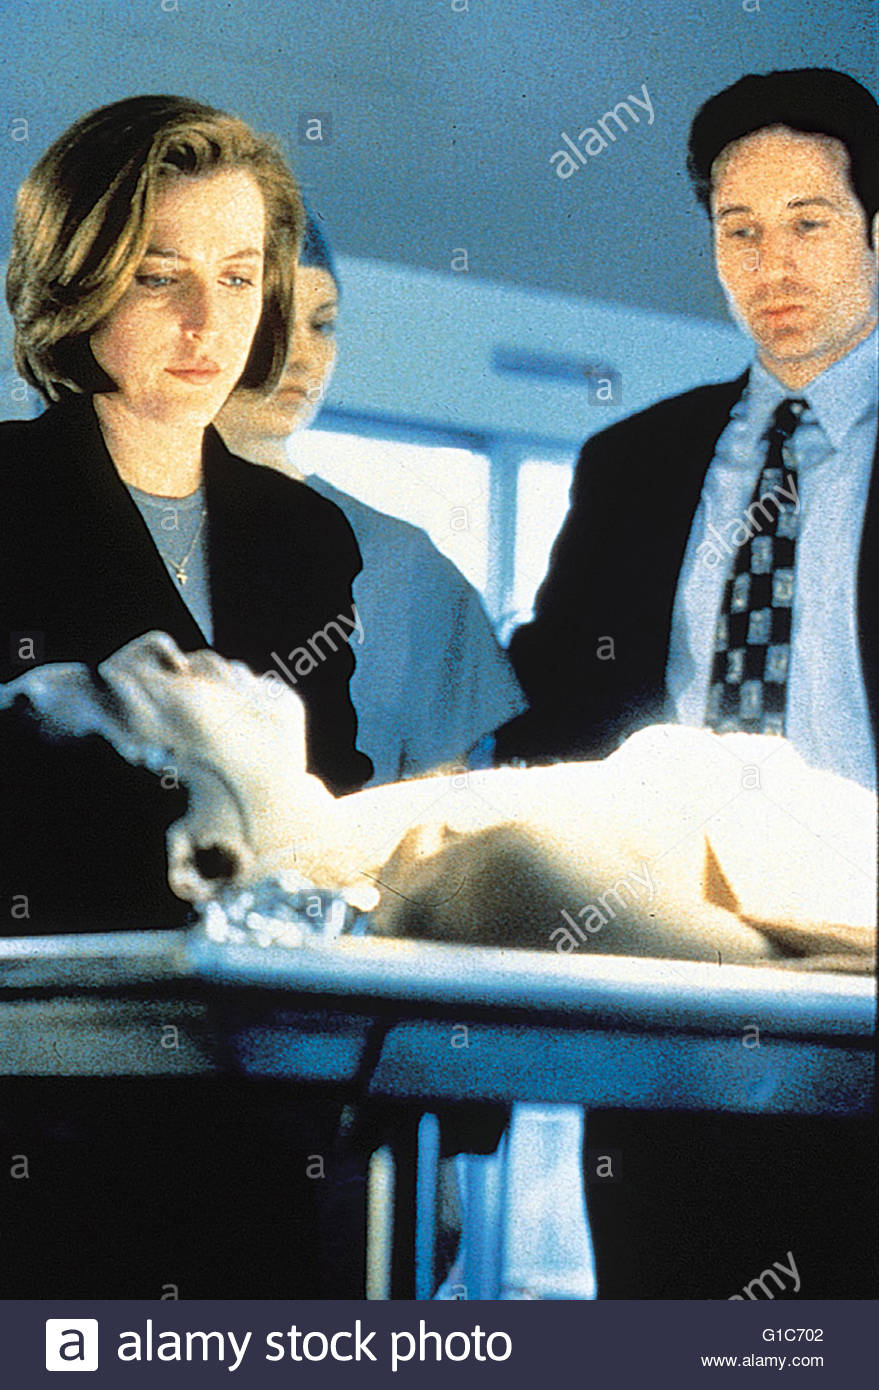 Akte X / Gillian Anderson / David Duchovny / The X-Files, Stock Photo